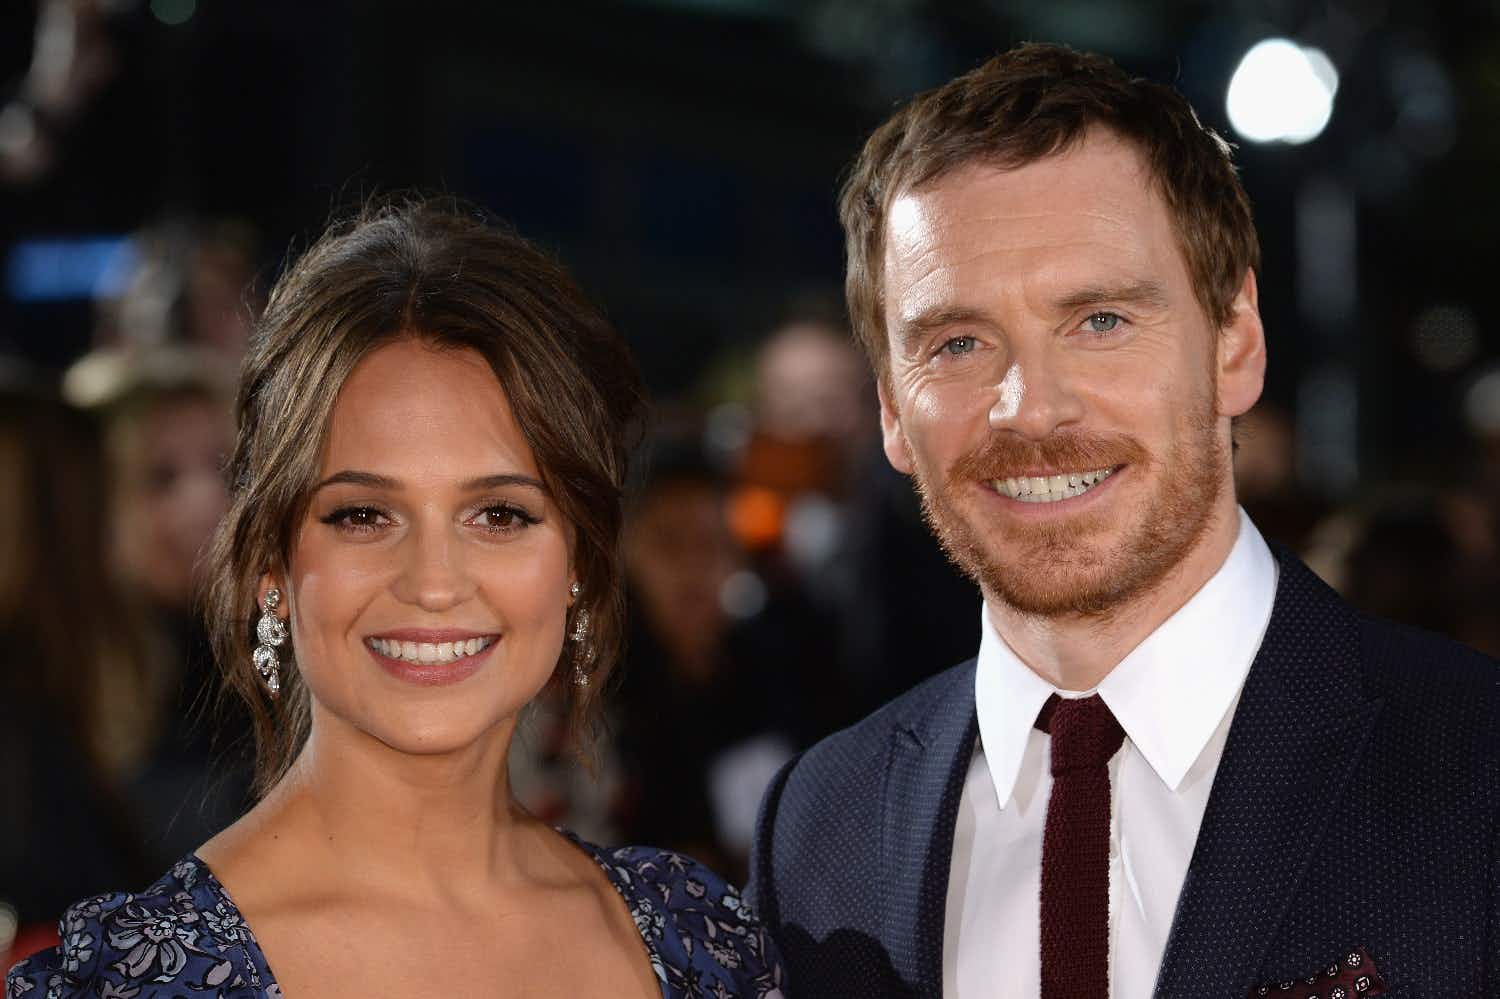 Like Madonna, Alicia Vikander and Michael Fassbender have now moved to Lisbon